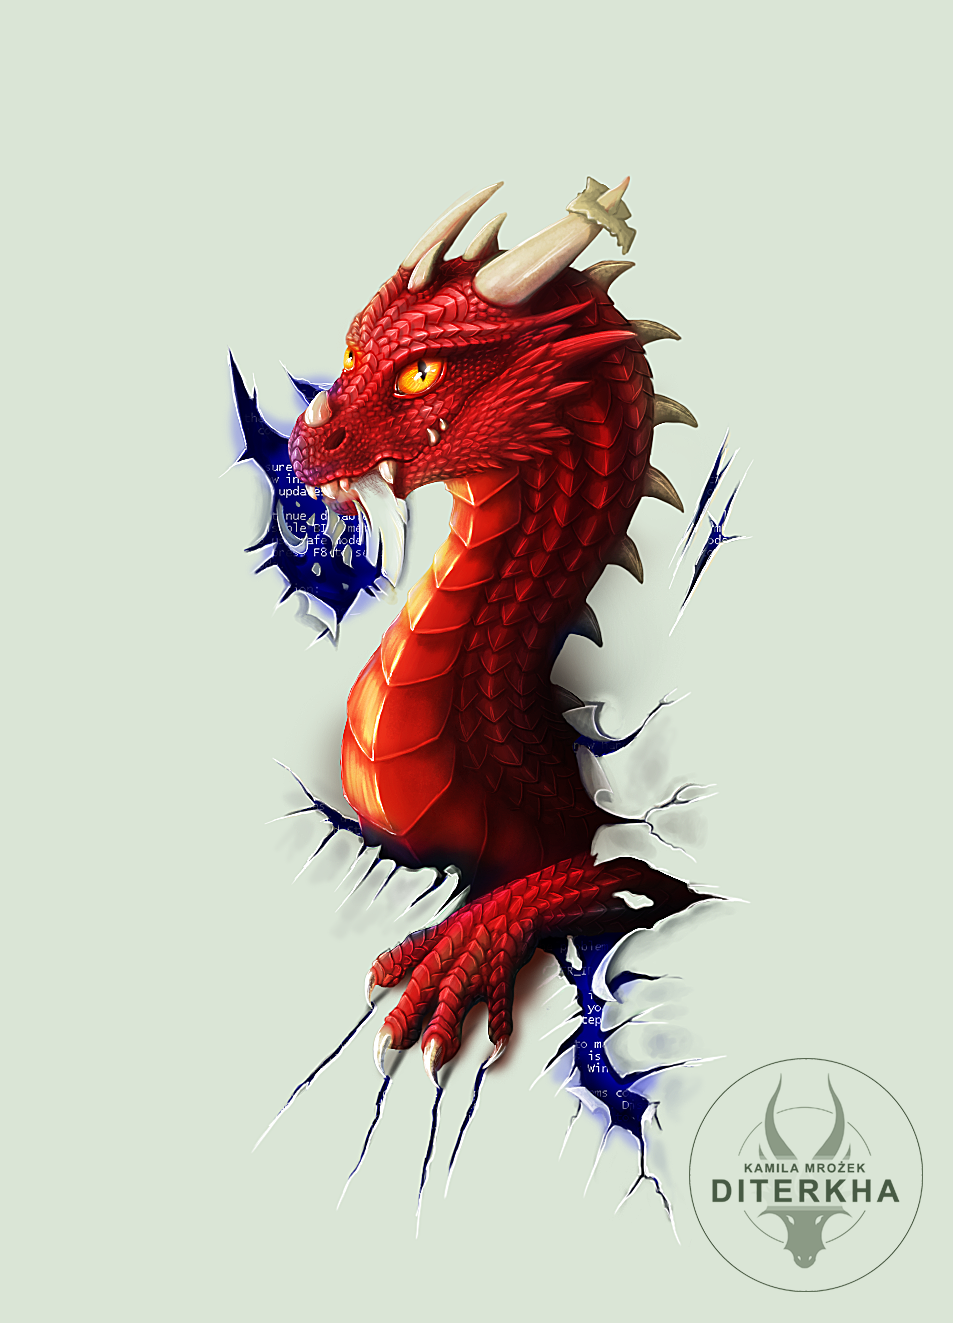 Most recent image: Kwejk Dragon #2